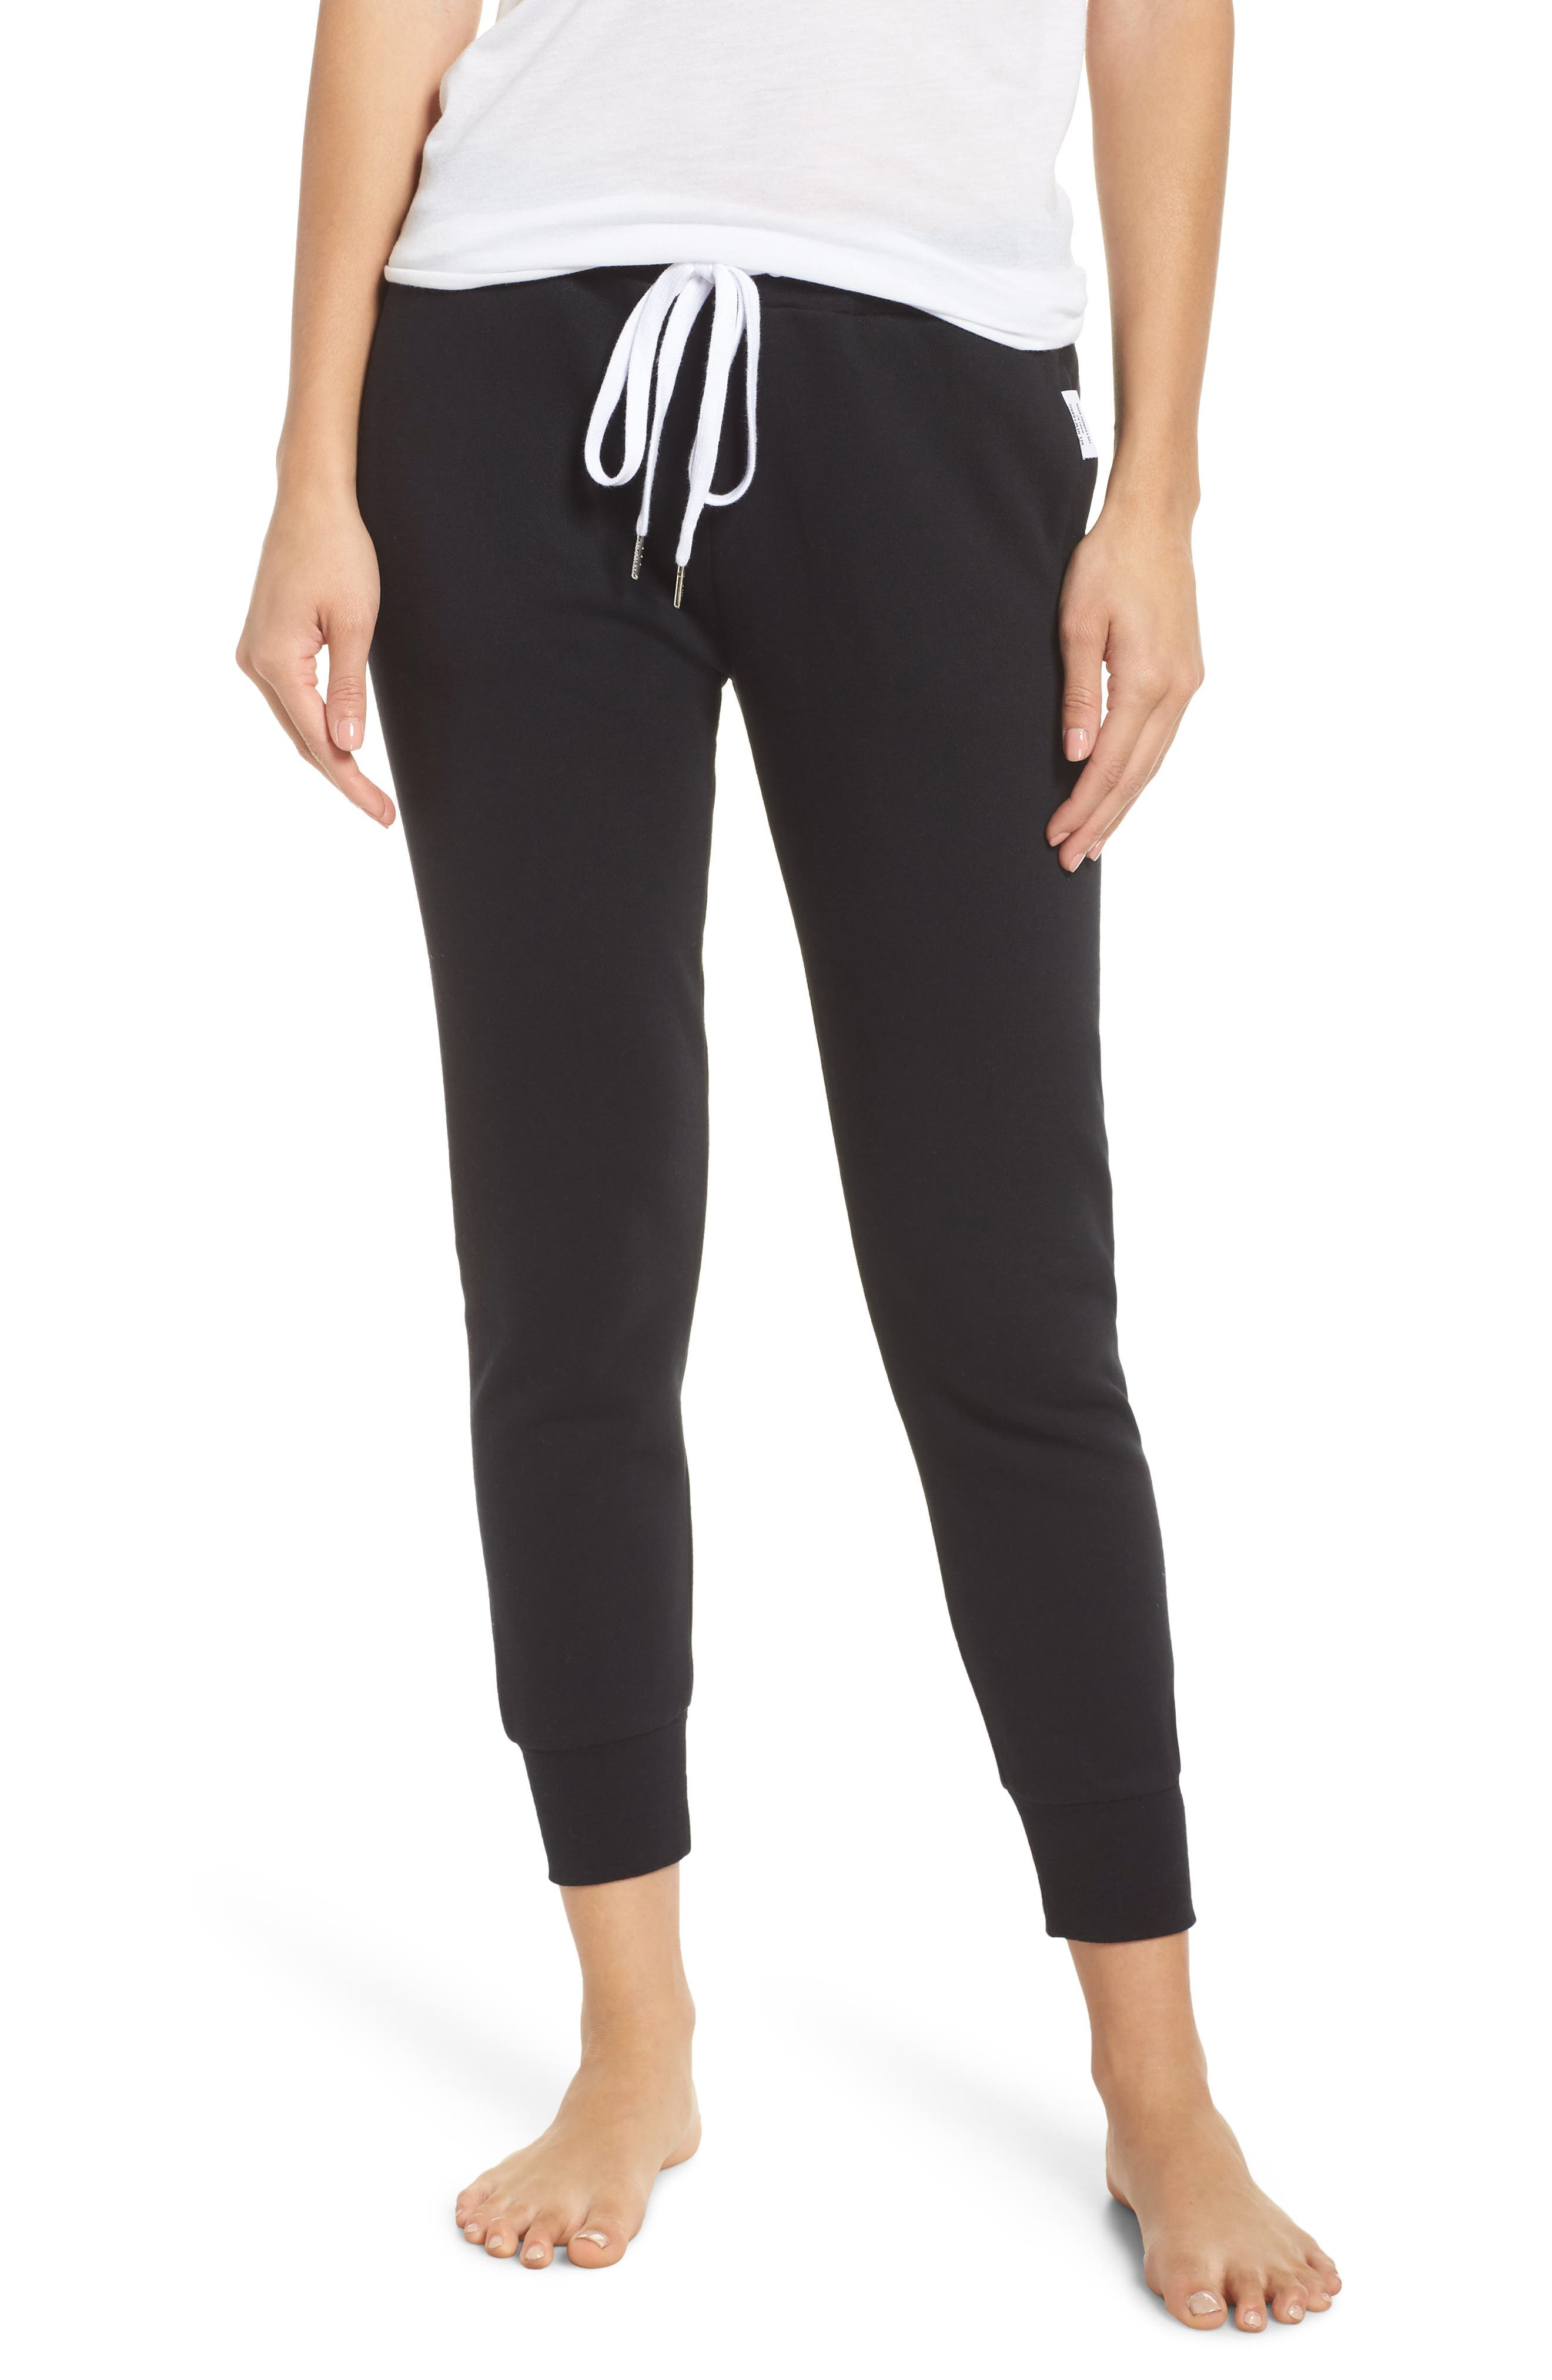 THE LAUNDRY ROOM Lounge Pants in Black